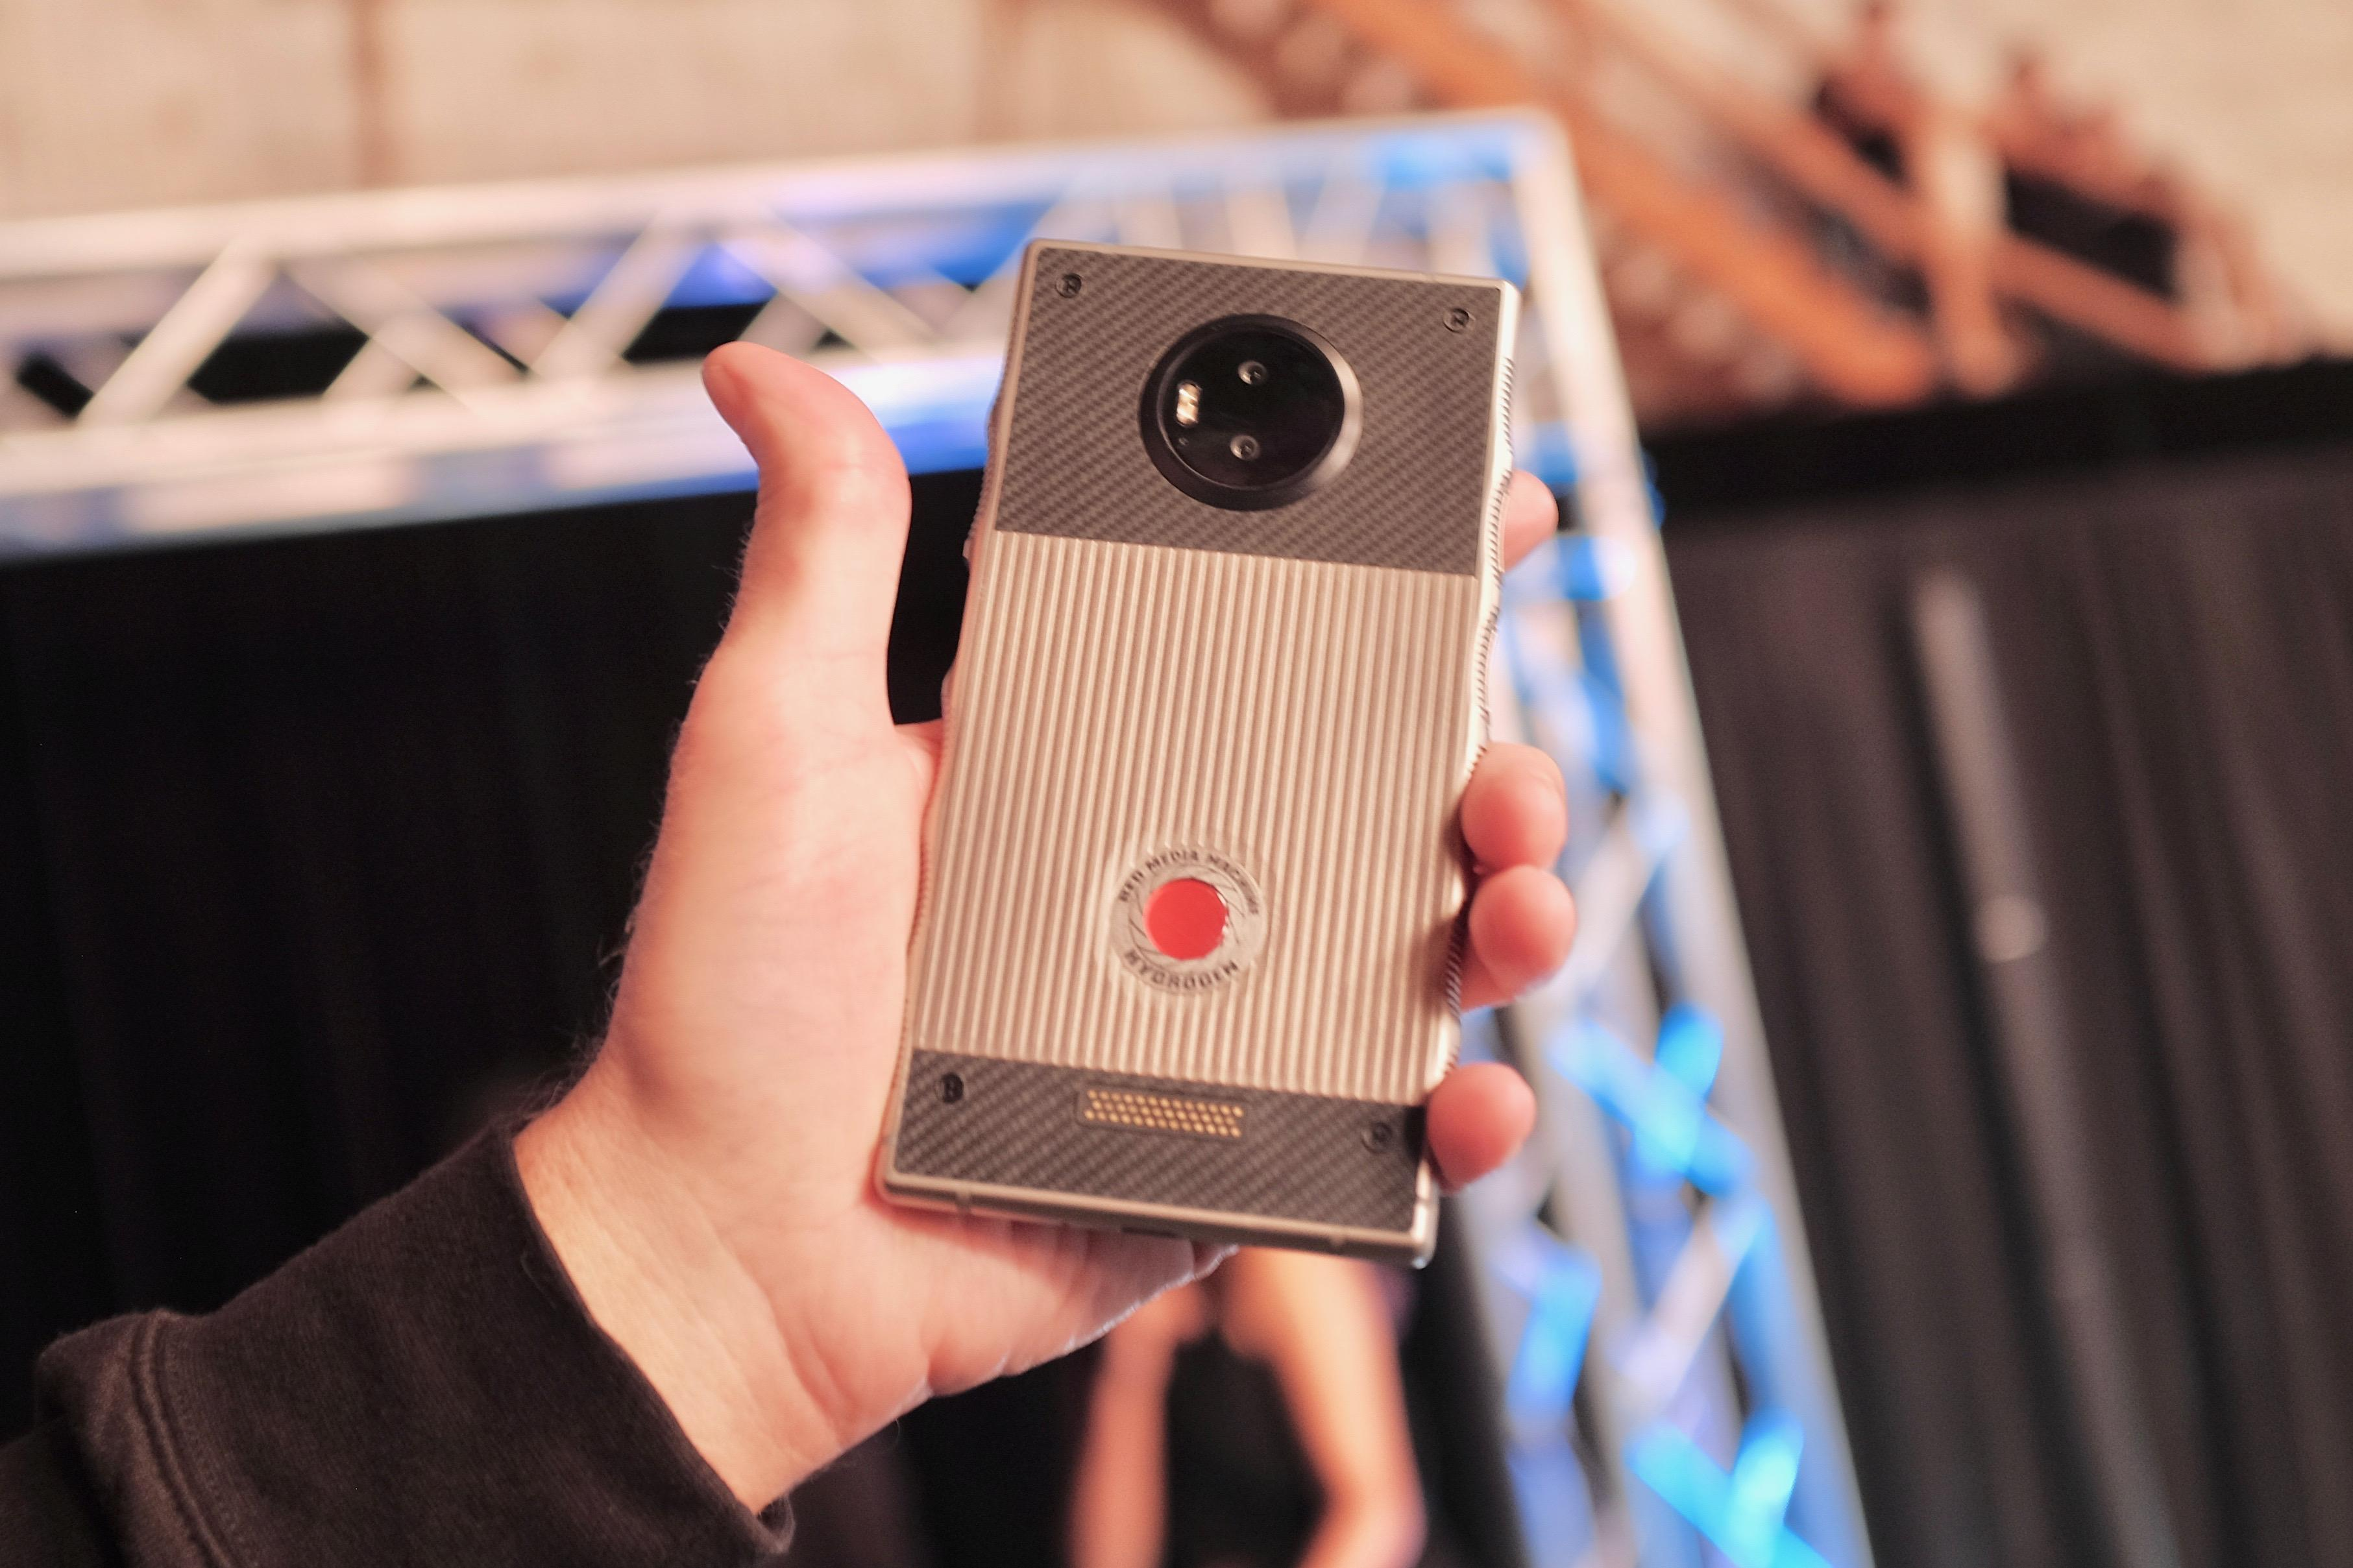 red-hydrogen-mkbhd-prototype-marques-brownlee-cnet-screencap-w-permission